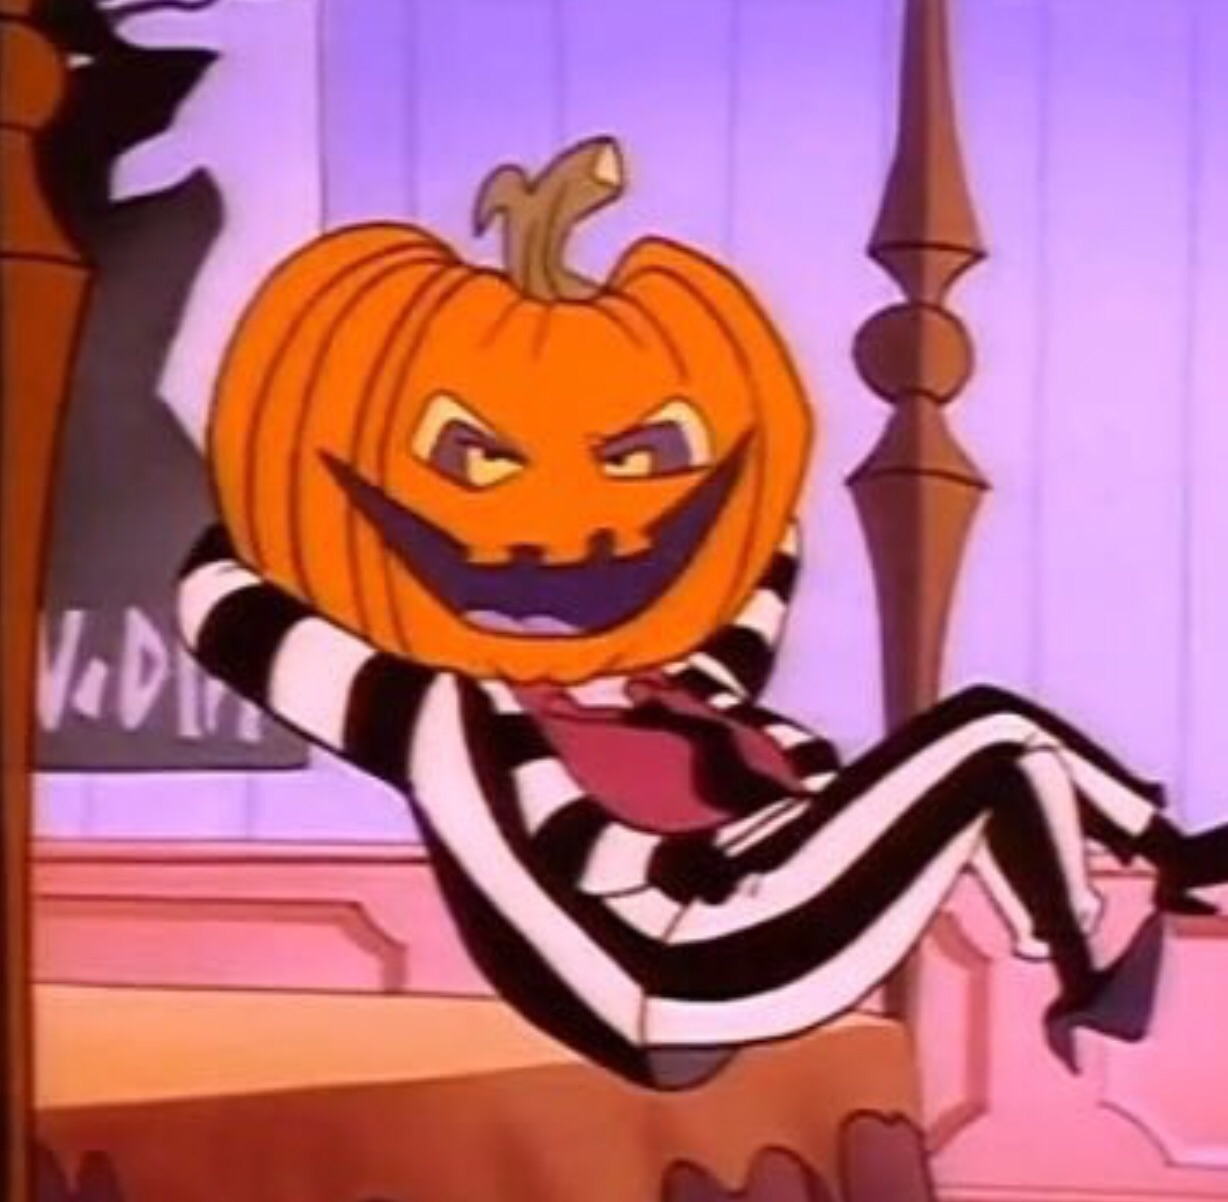 25 Images About Beetlejuice Cartoon On We Heart It See More About Cartoon Beetlejuice And Lydia Deetz